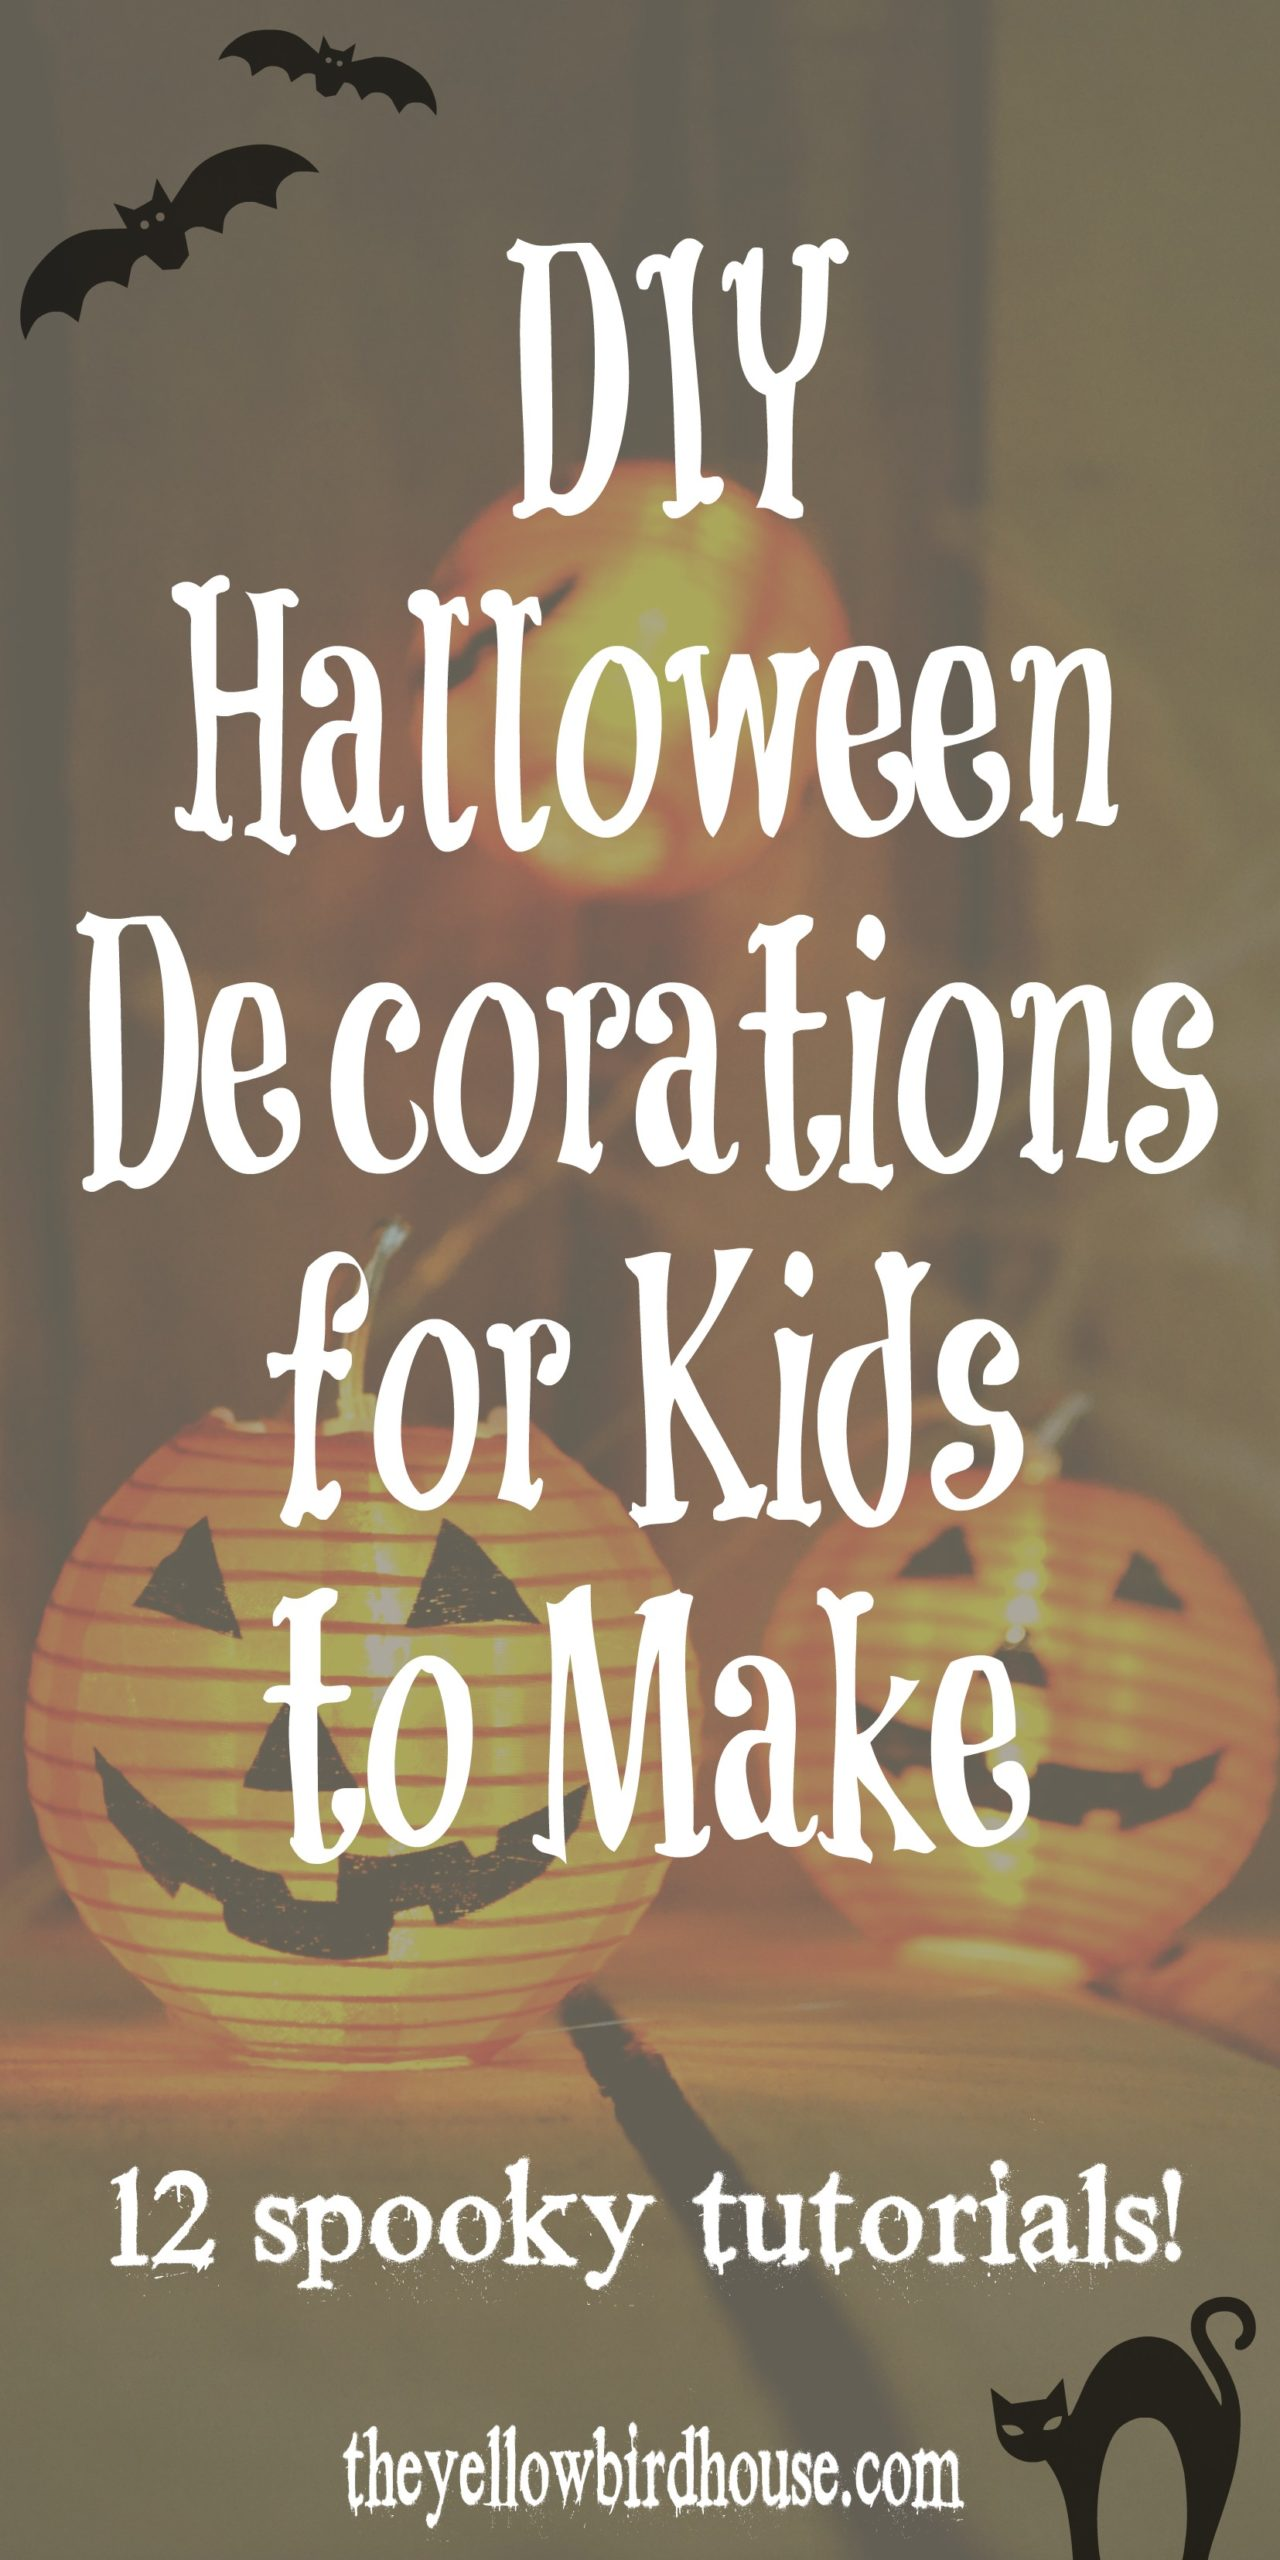 12 DIY Halloween Decorations for Kids